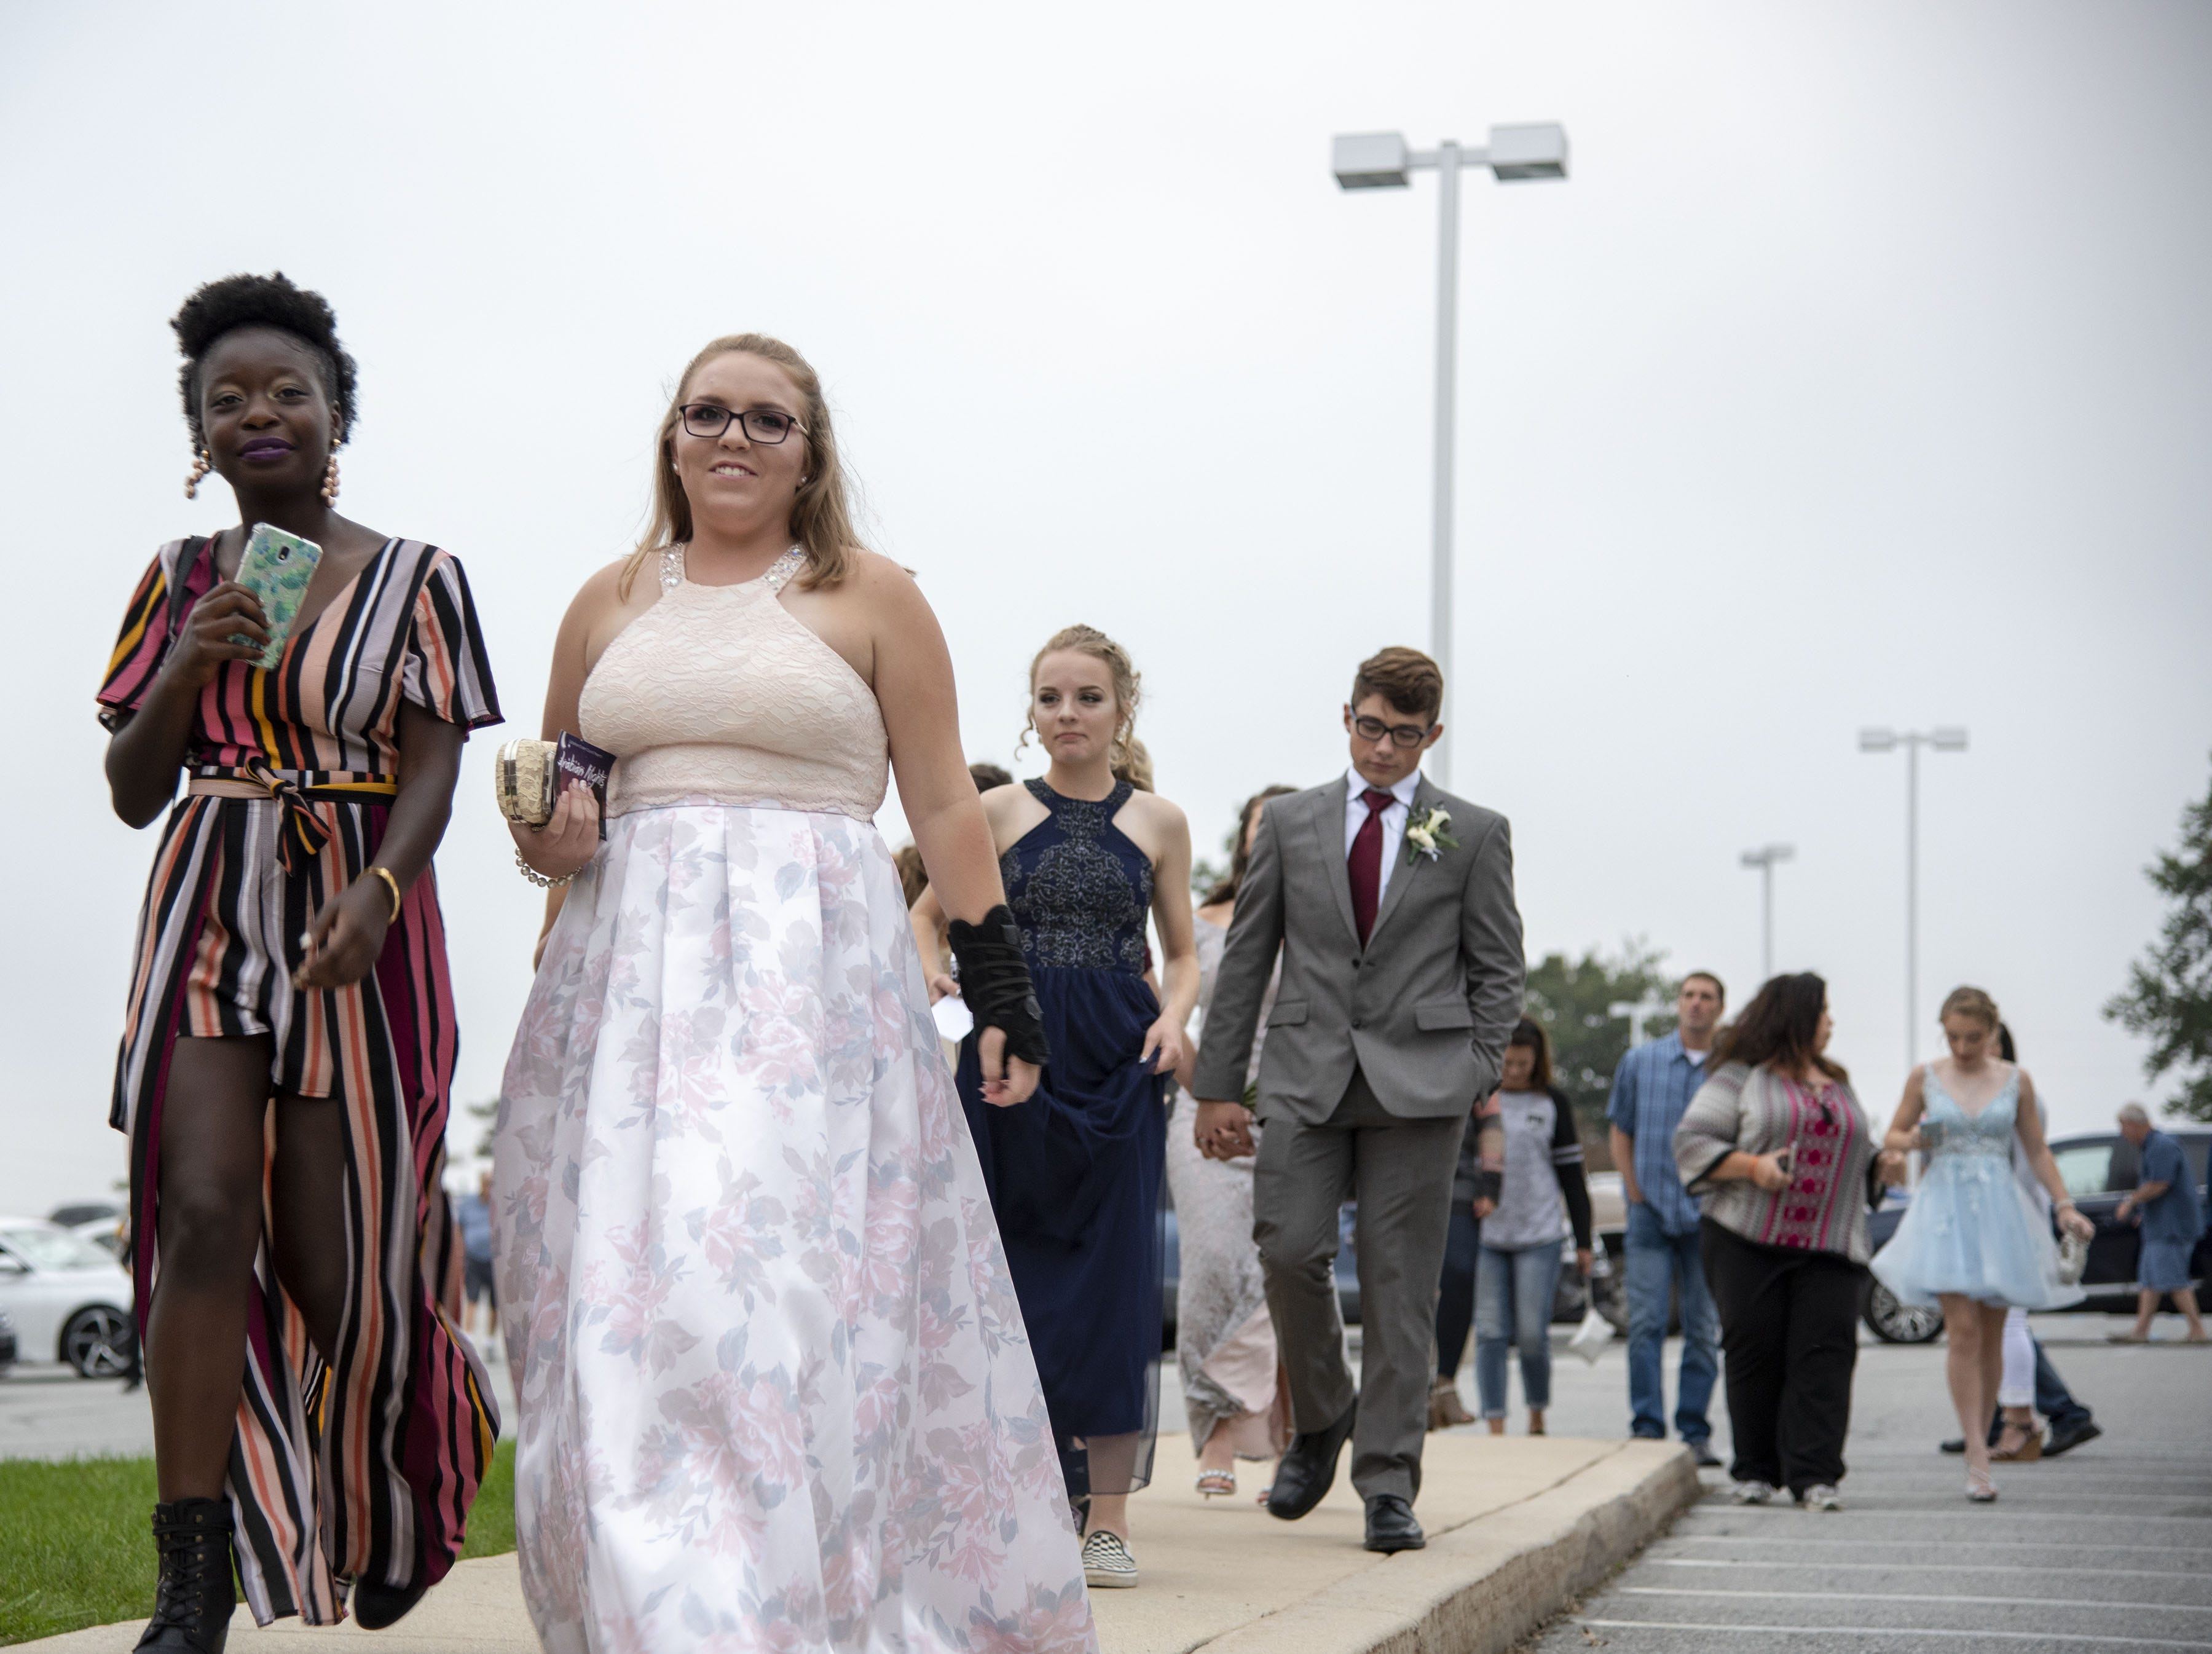 Students arrive to the Dallastown High School homecoming dance on Saturday, October 06, 2018.